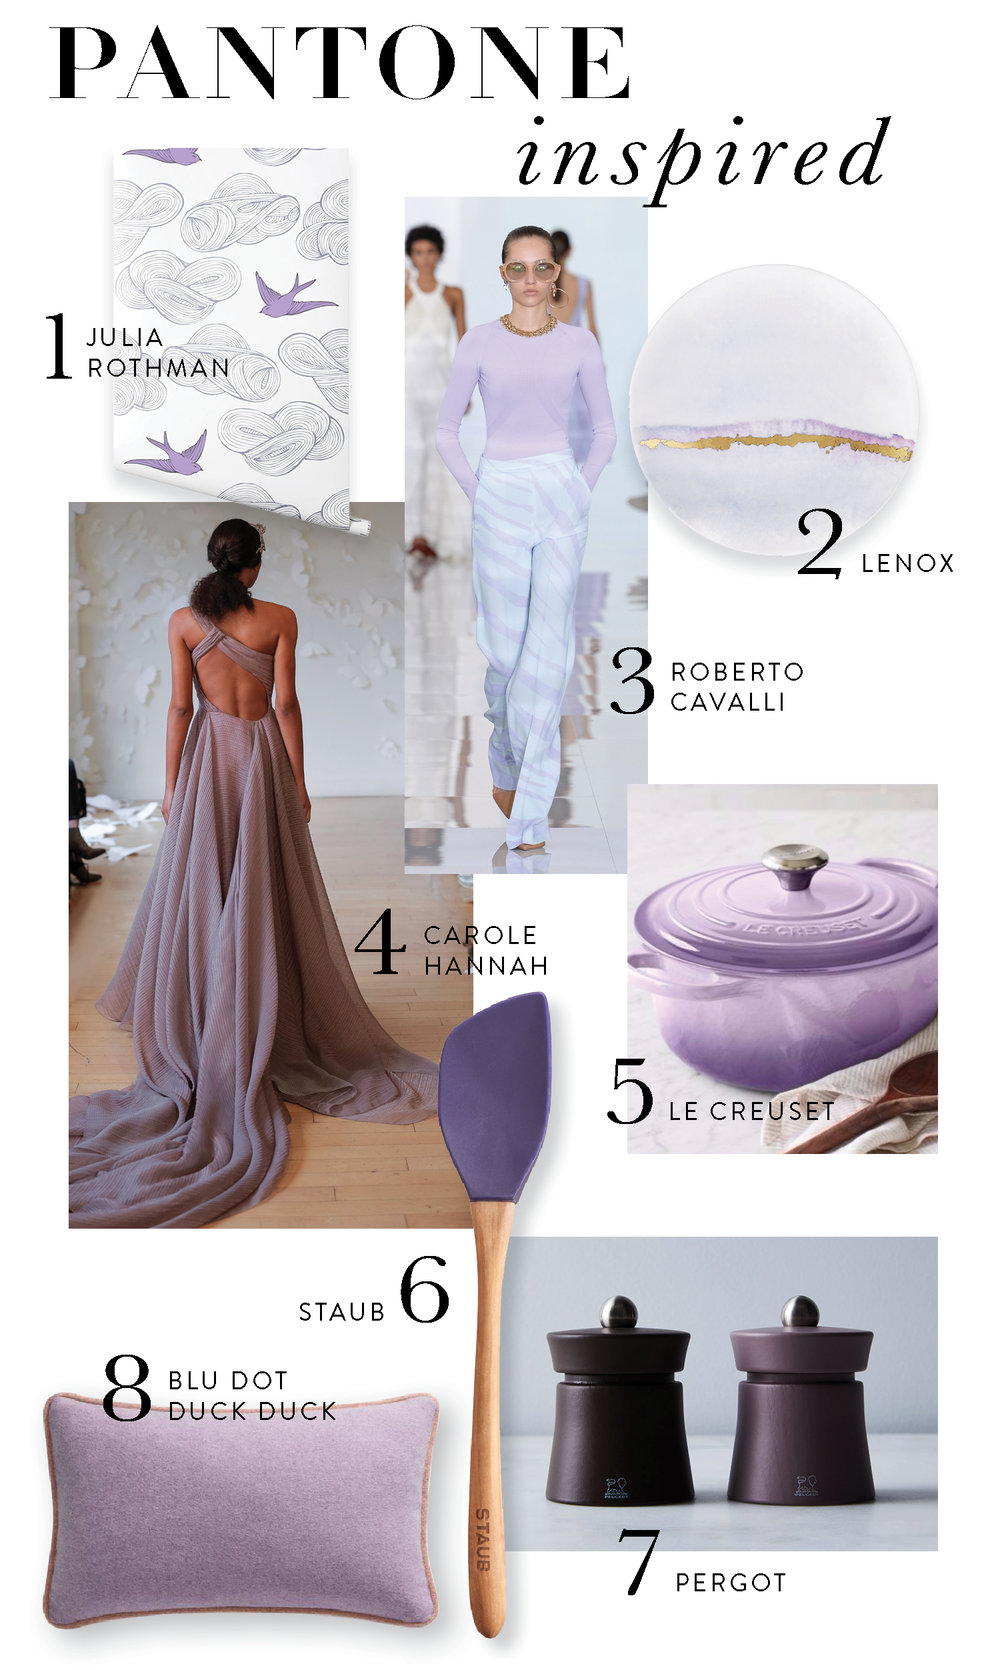 2018_Spring_Pantone-Violet-linens-everyday-co-boston.jpg